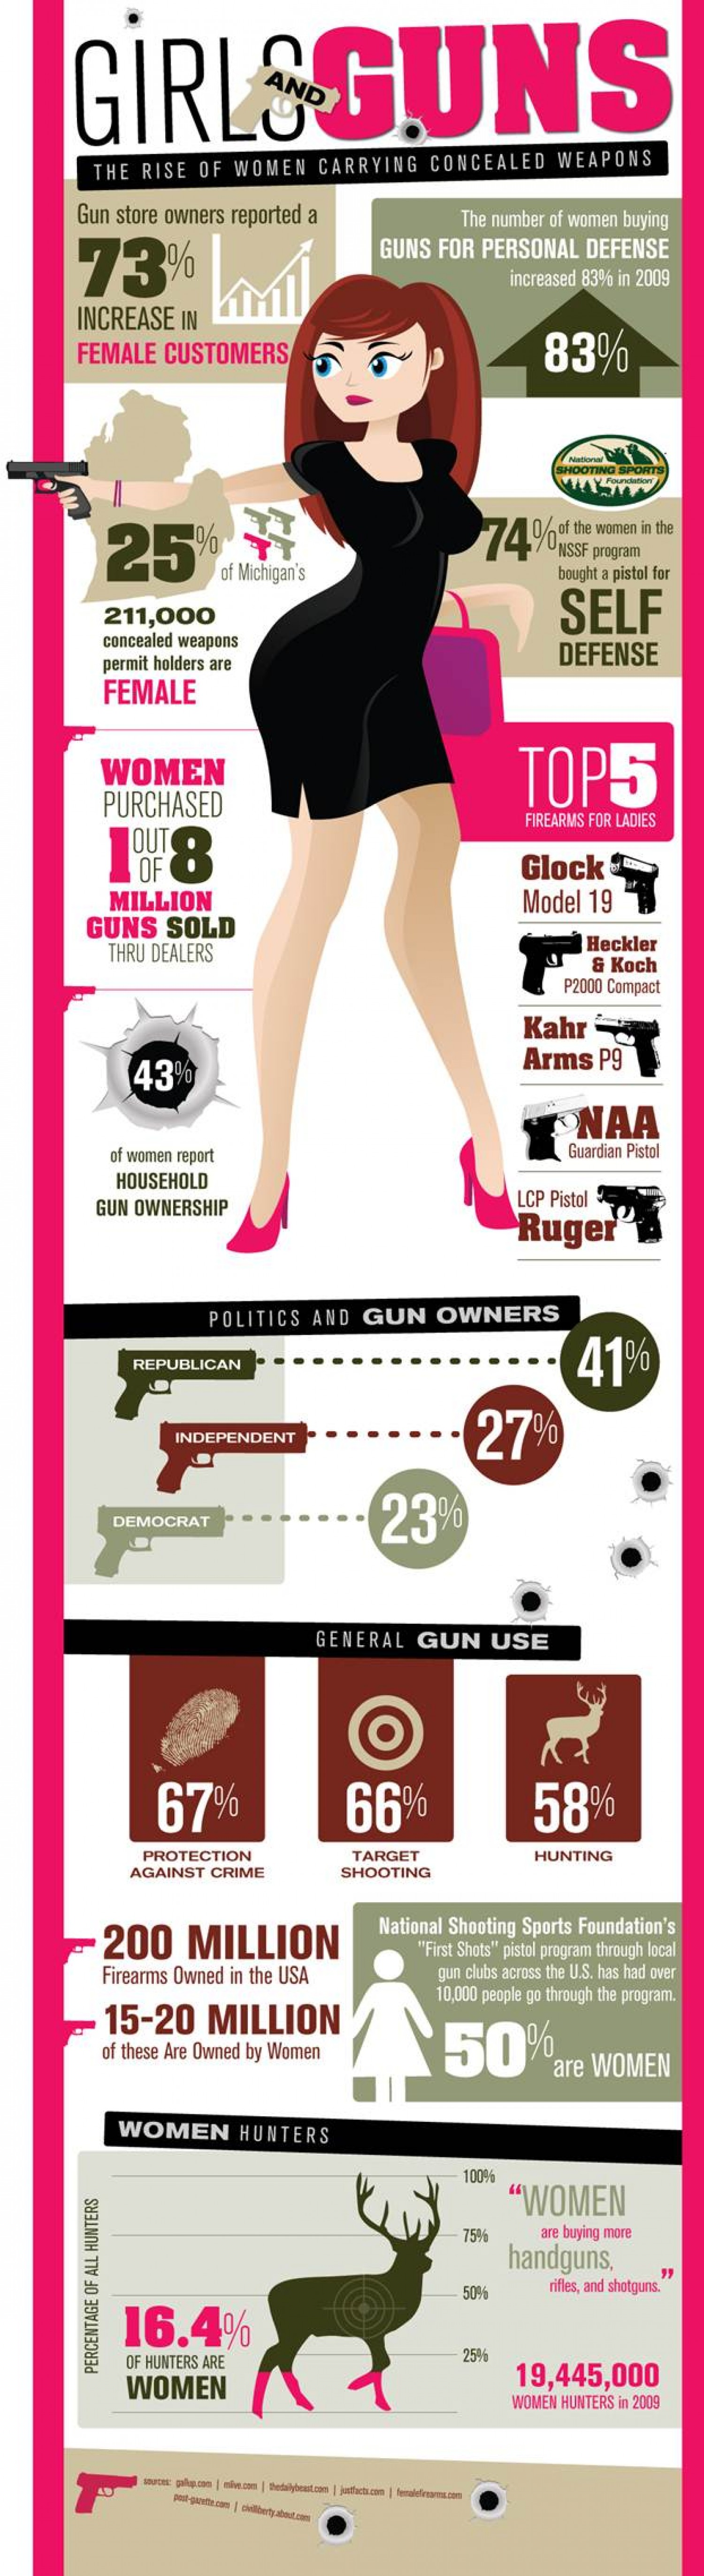 16. The rise of women carrying concealed weapons